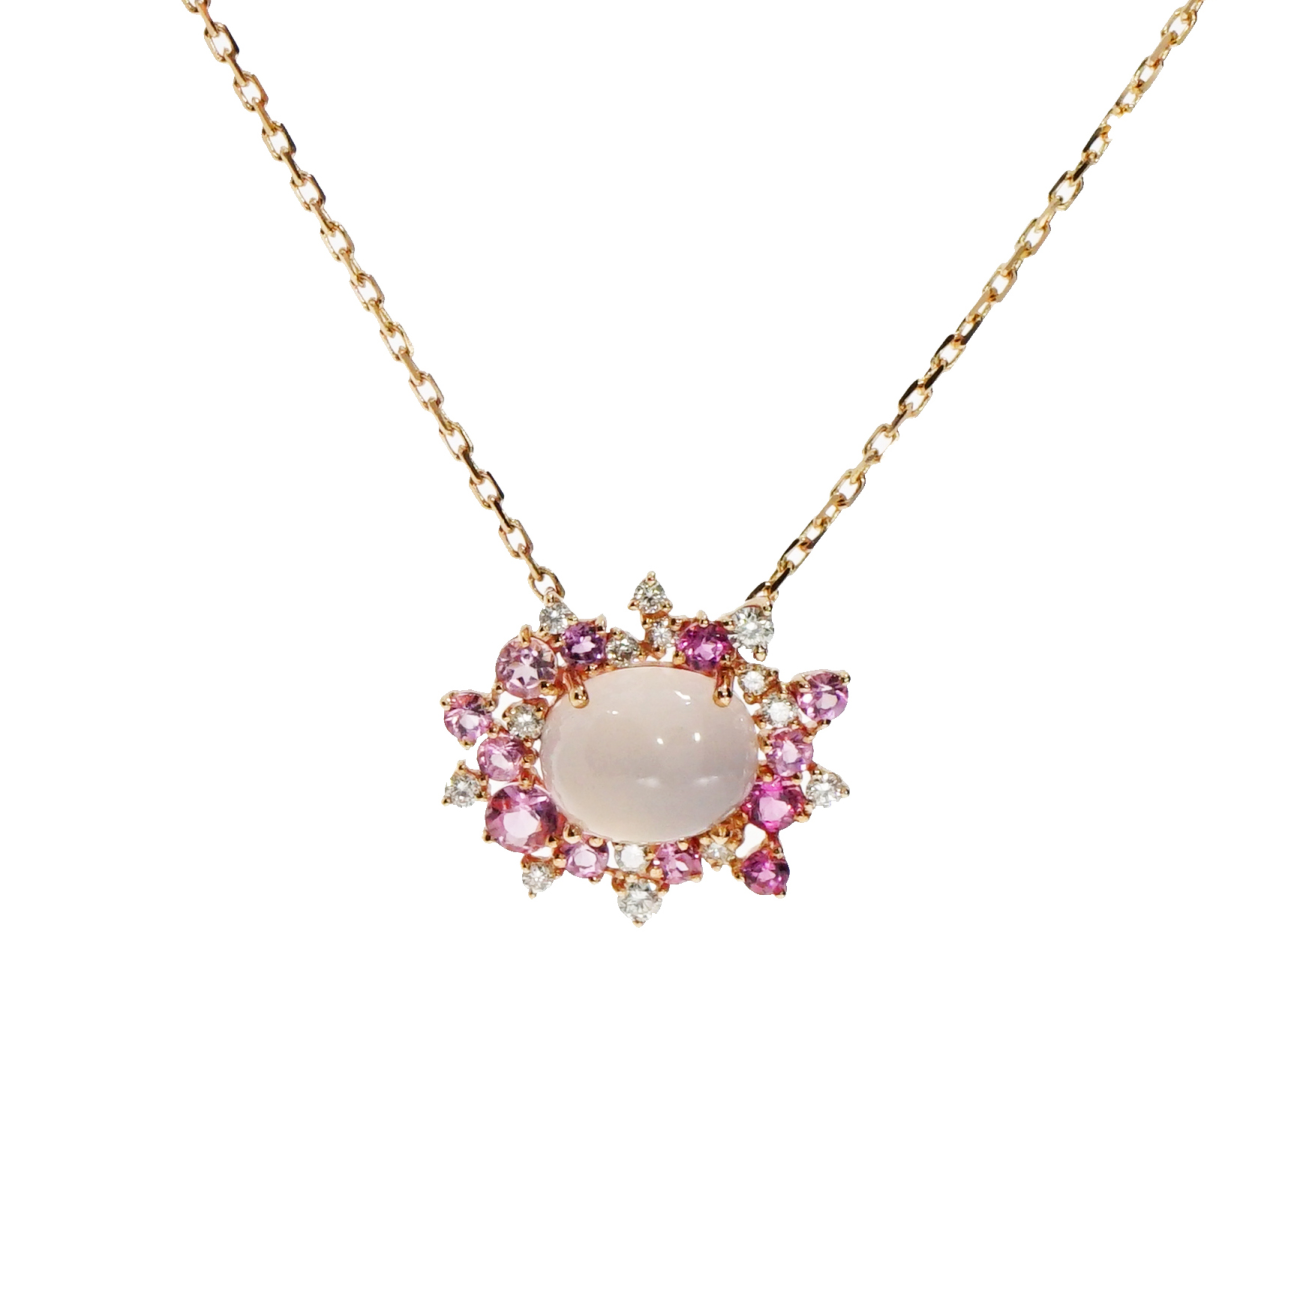 Brumani Jewelry - Baoba Pink Tourmaline Pendant Necklace | Manfredi Jewels